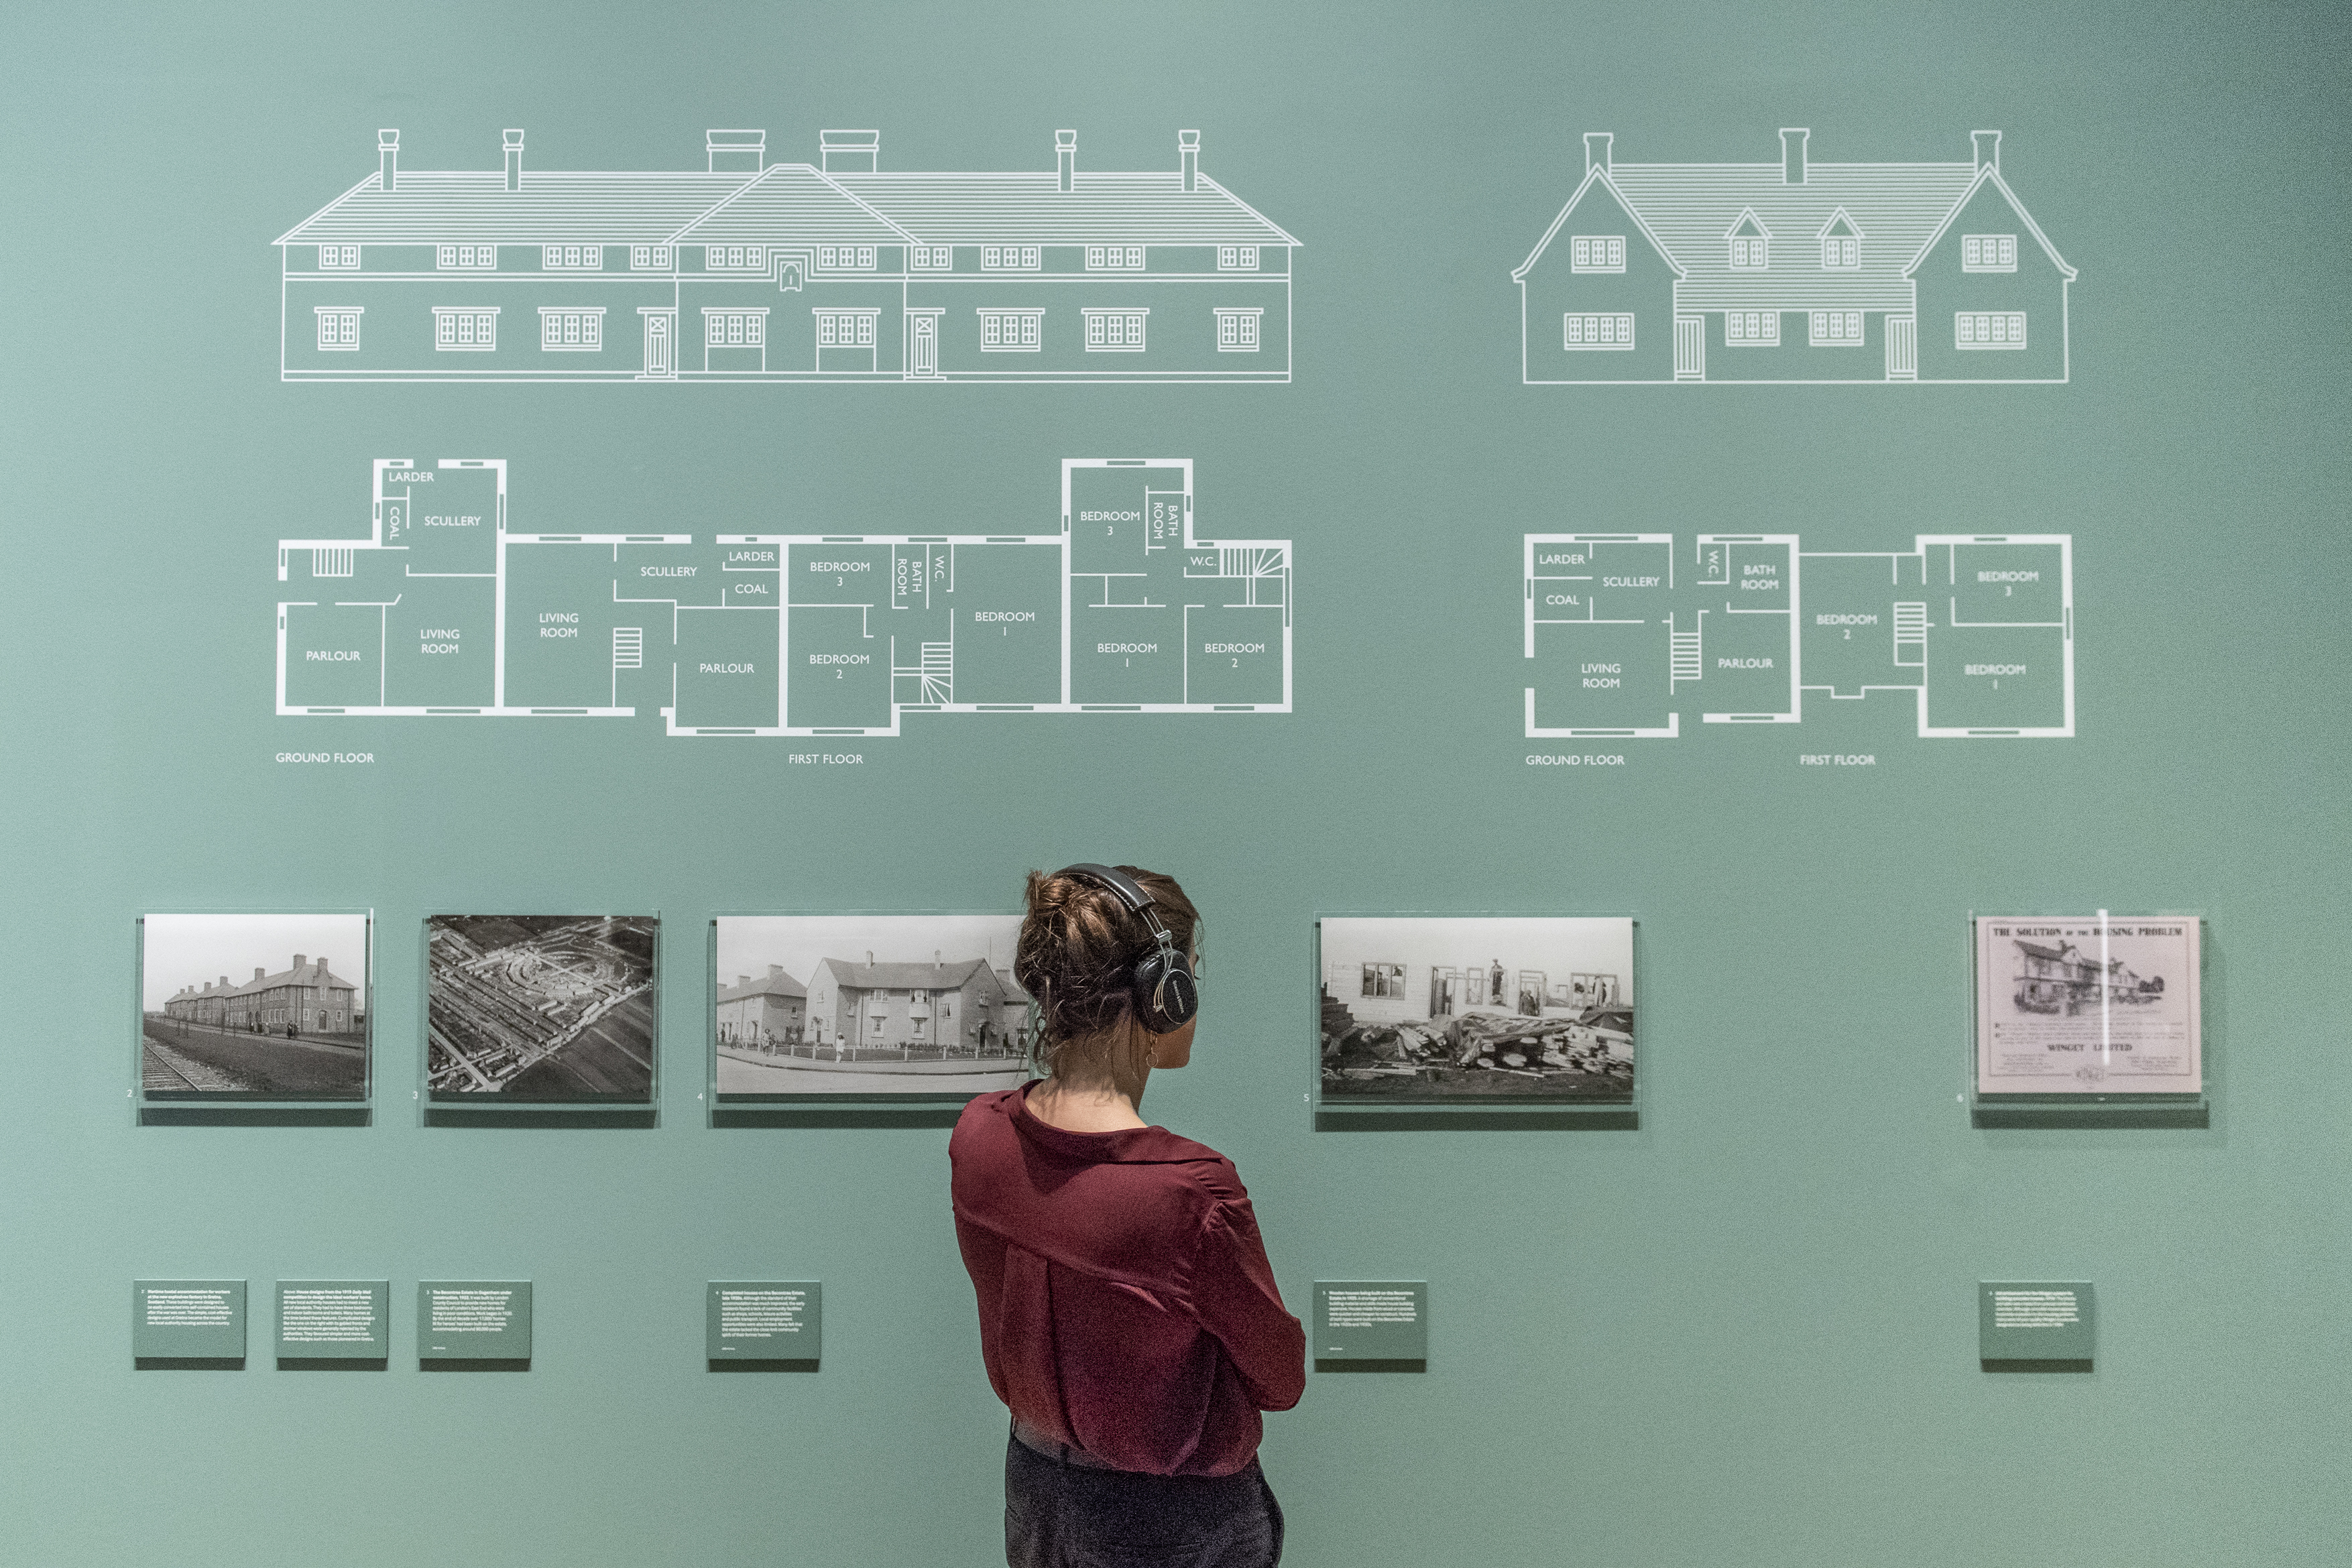 Photograph of Renewal, an exhibition at IWM London